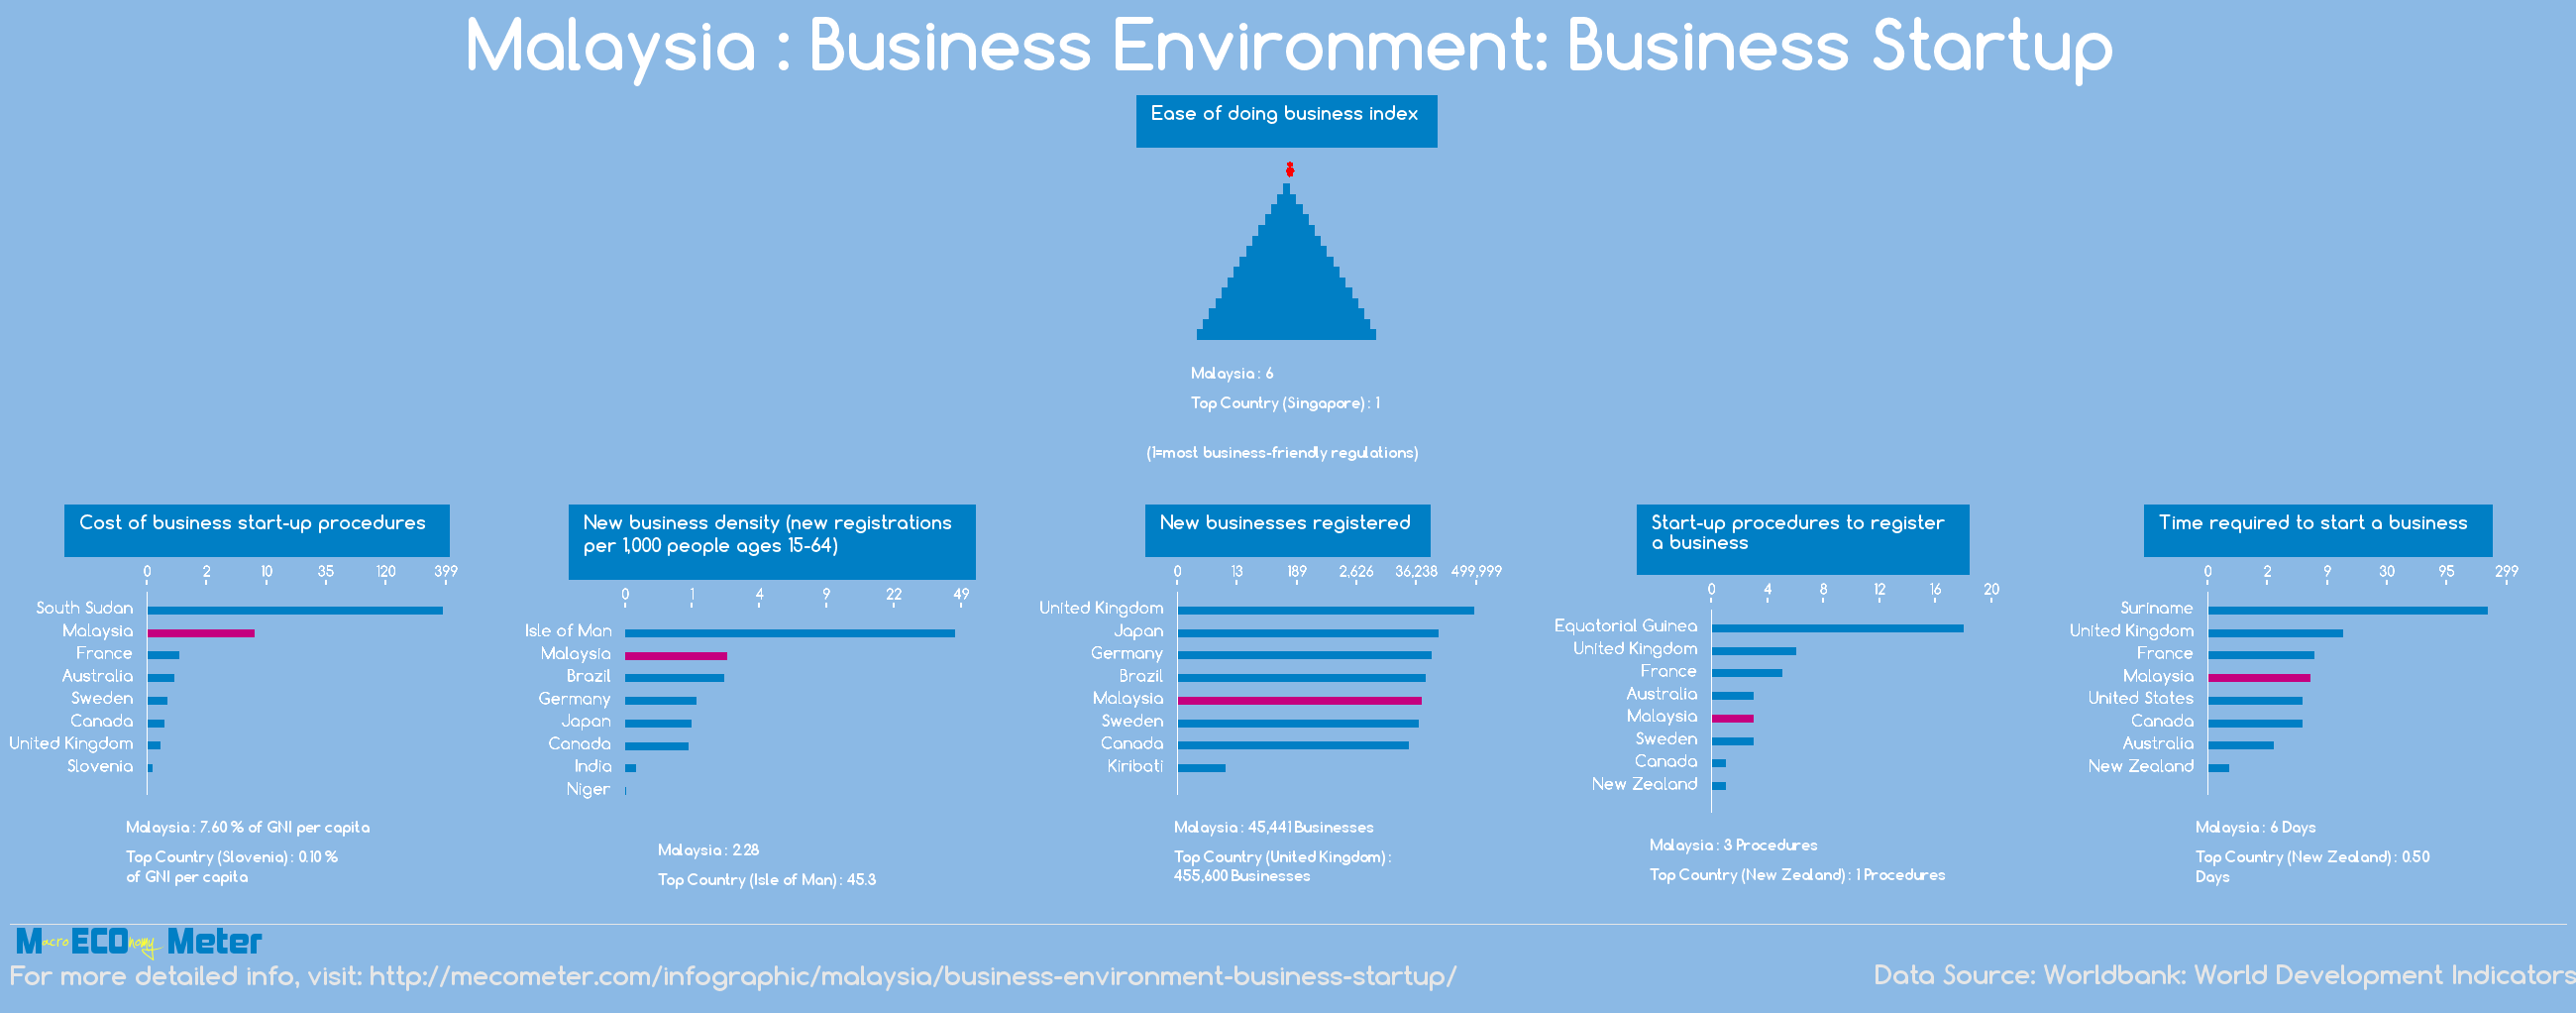 Malaysia : Business Environment: Business Startup